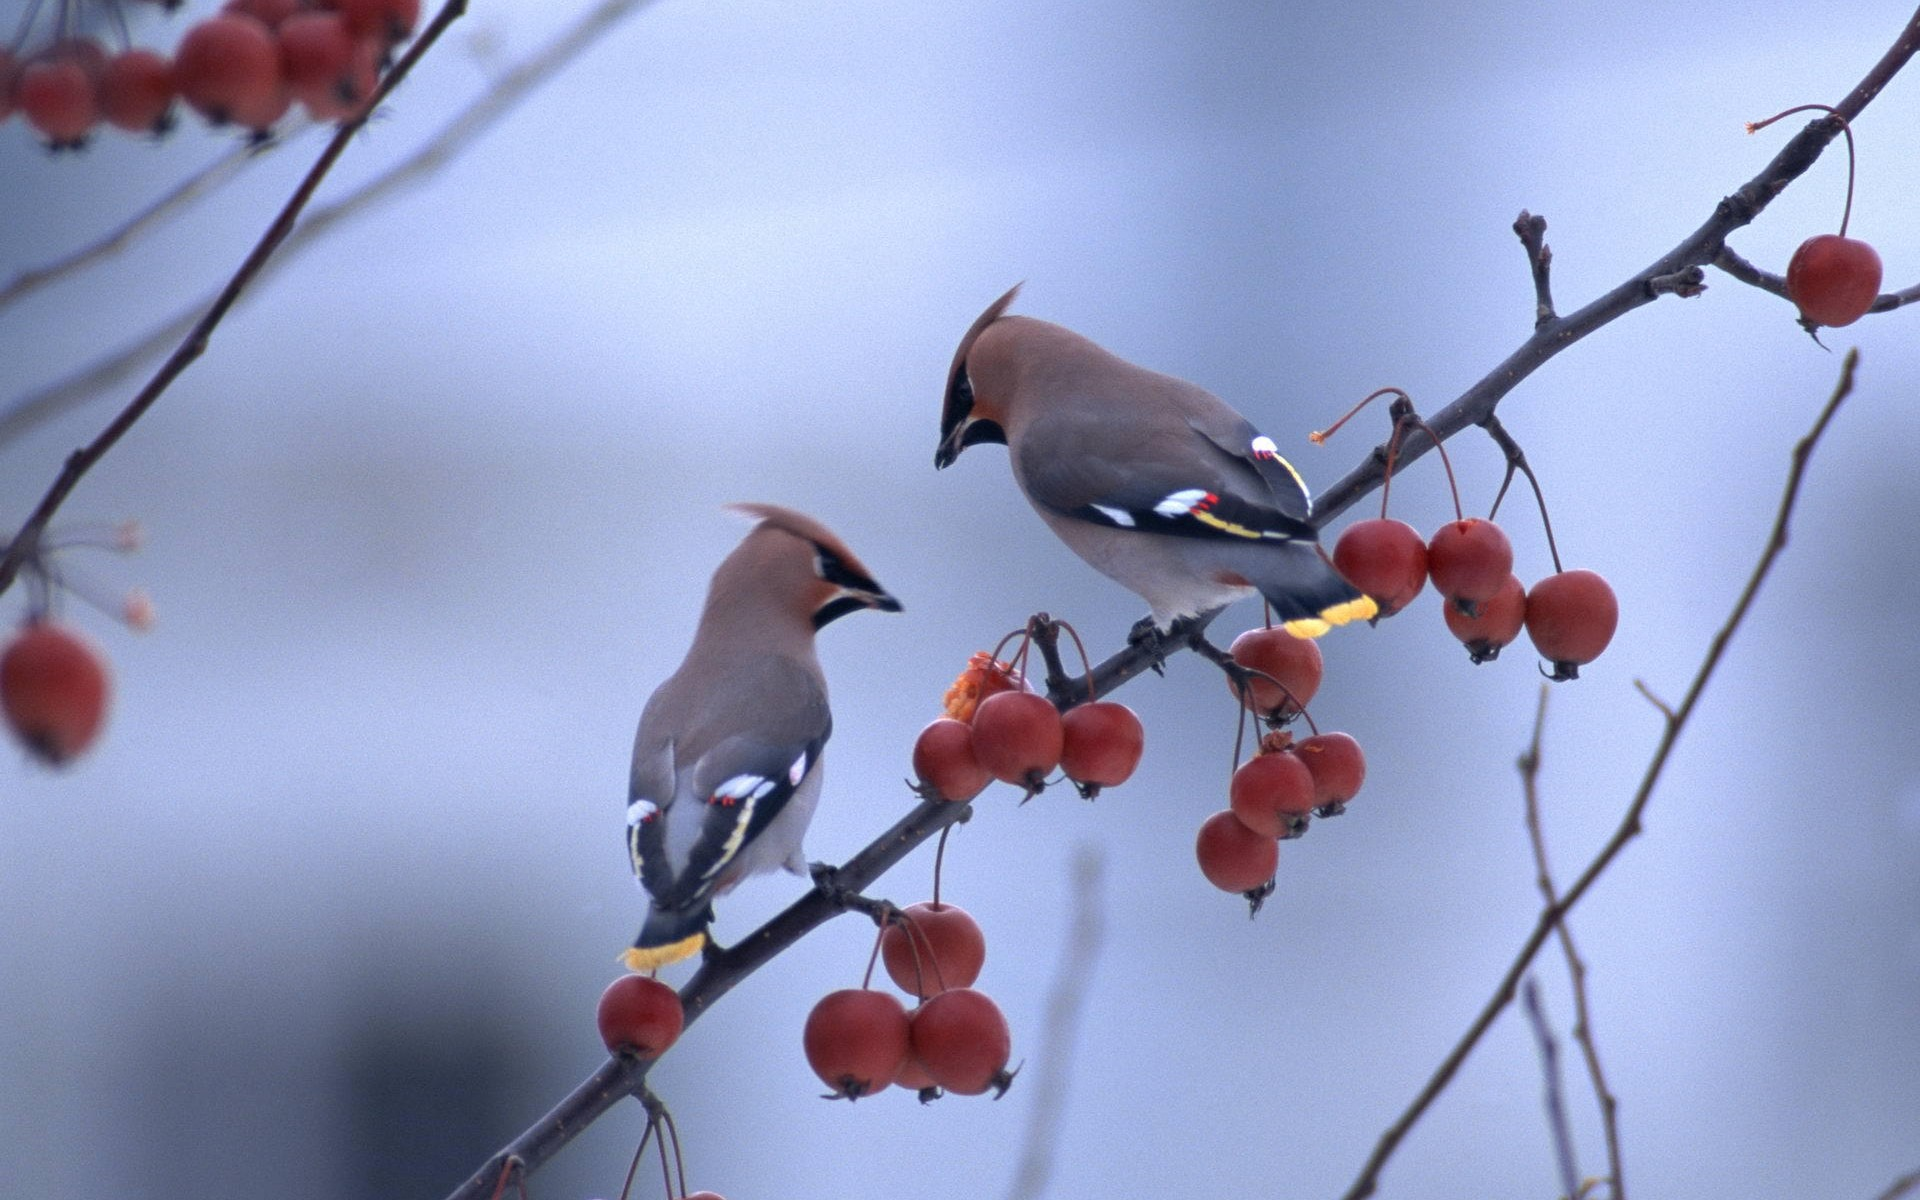 Bird branch close up birds branches berries wallpaper 1920x1200 1920x1200